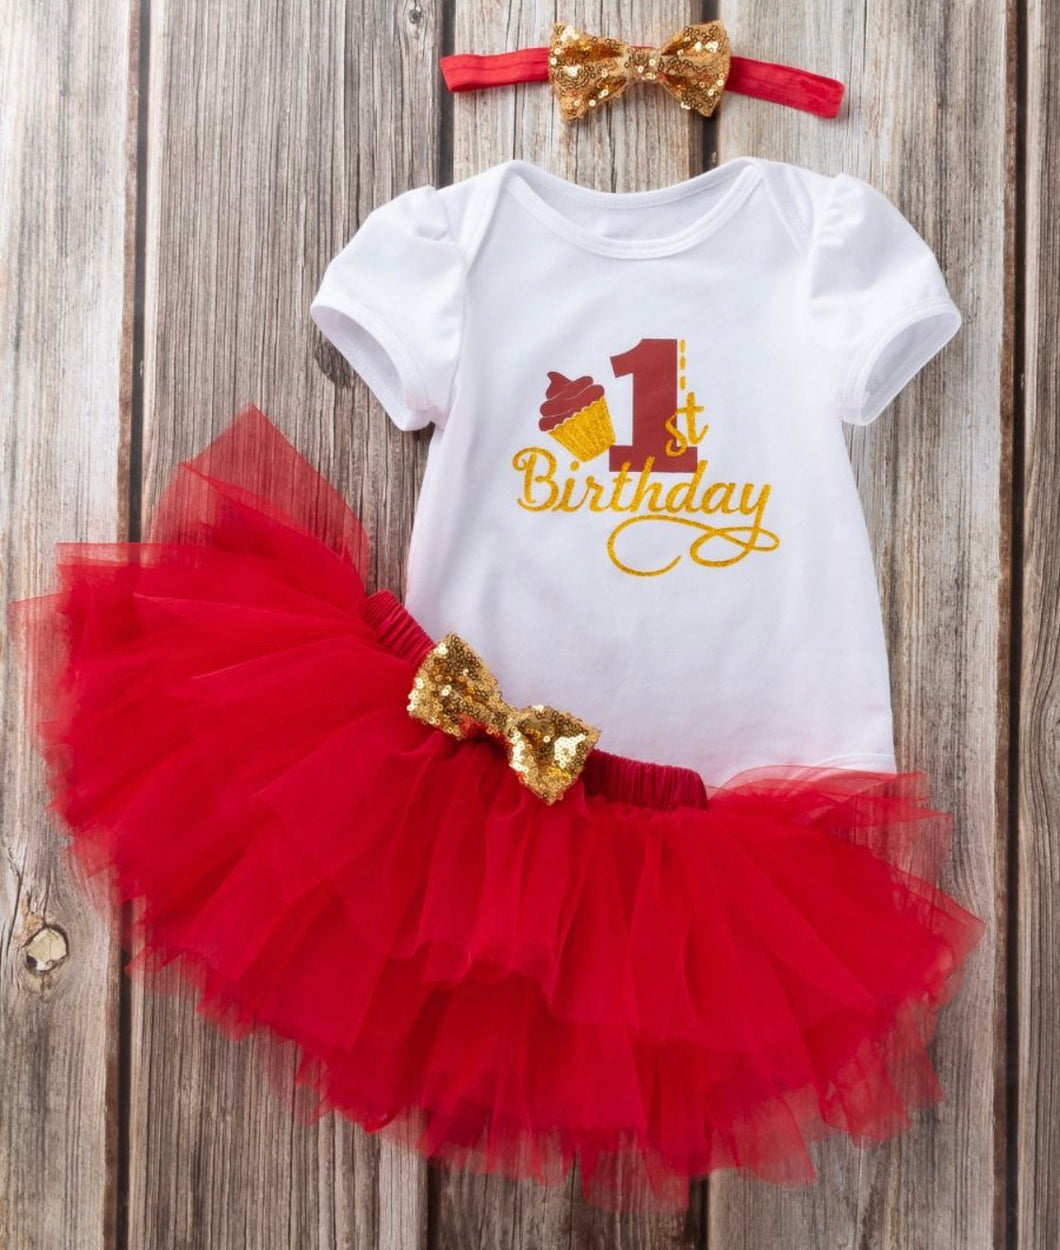 Girls 1st birthday set size 12 months - red